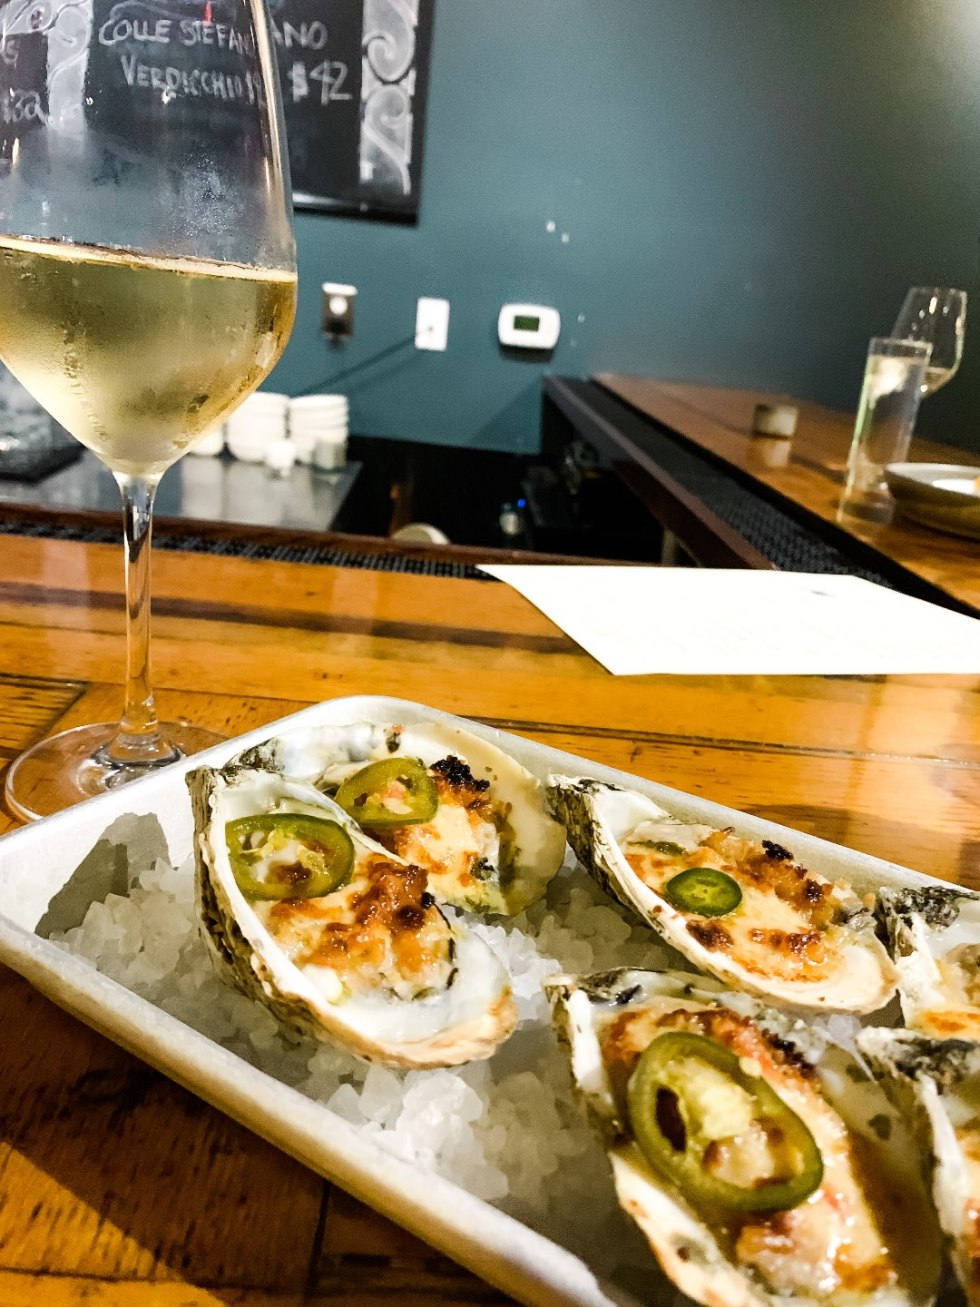 Raleigh Oyster Crawl - I'm Fixin' To - @mbg0112 | Raleigh Oyster Crawl by popular North Carolina blog, I'm Fixin' To: image of oysters on ice in a metal tray next to glass of white wine.